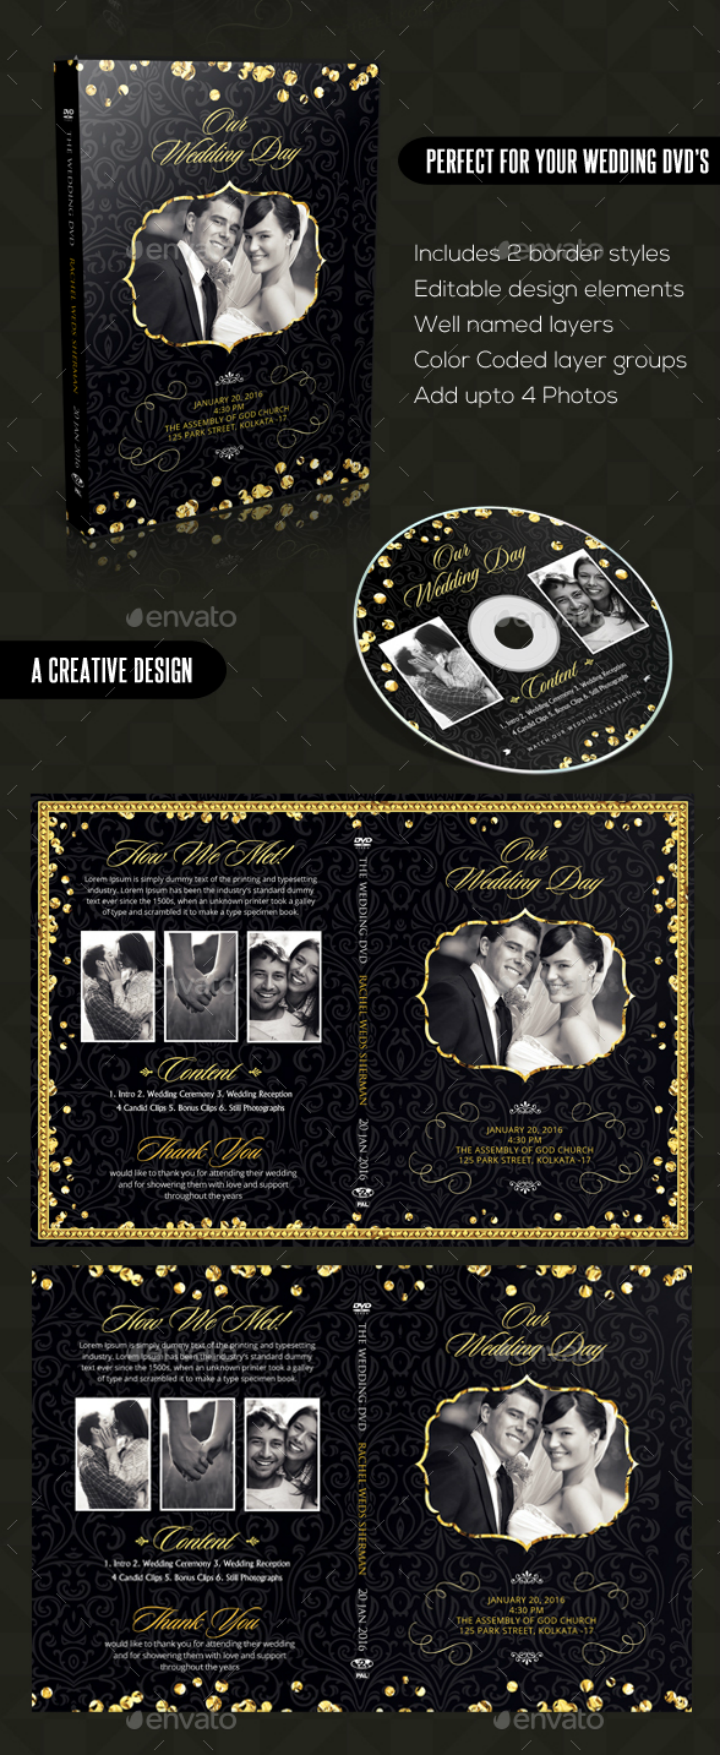 Vintage-Black-Gold-Wedding-DVD-Template